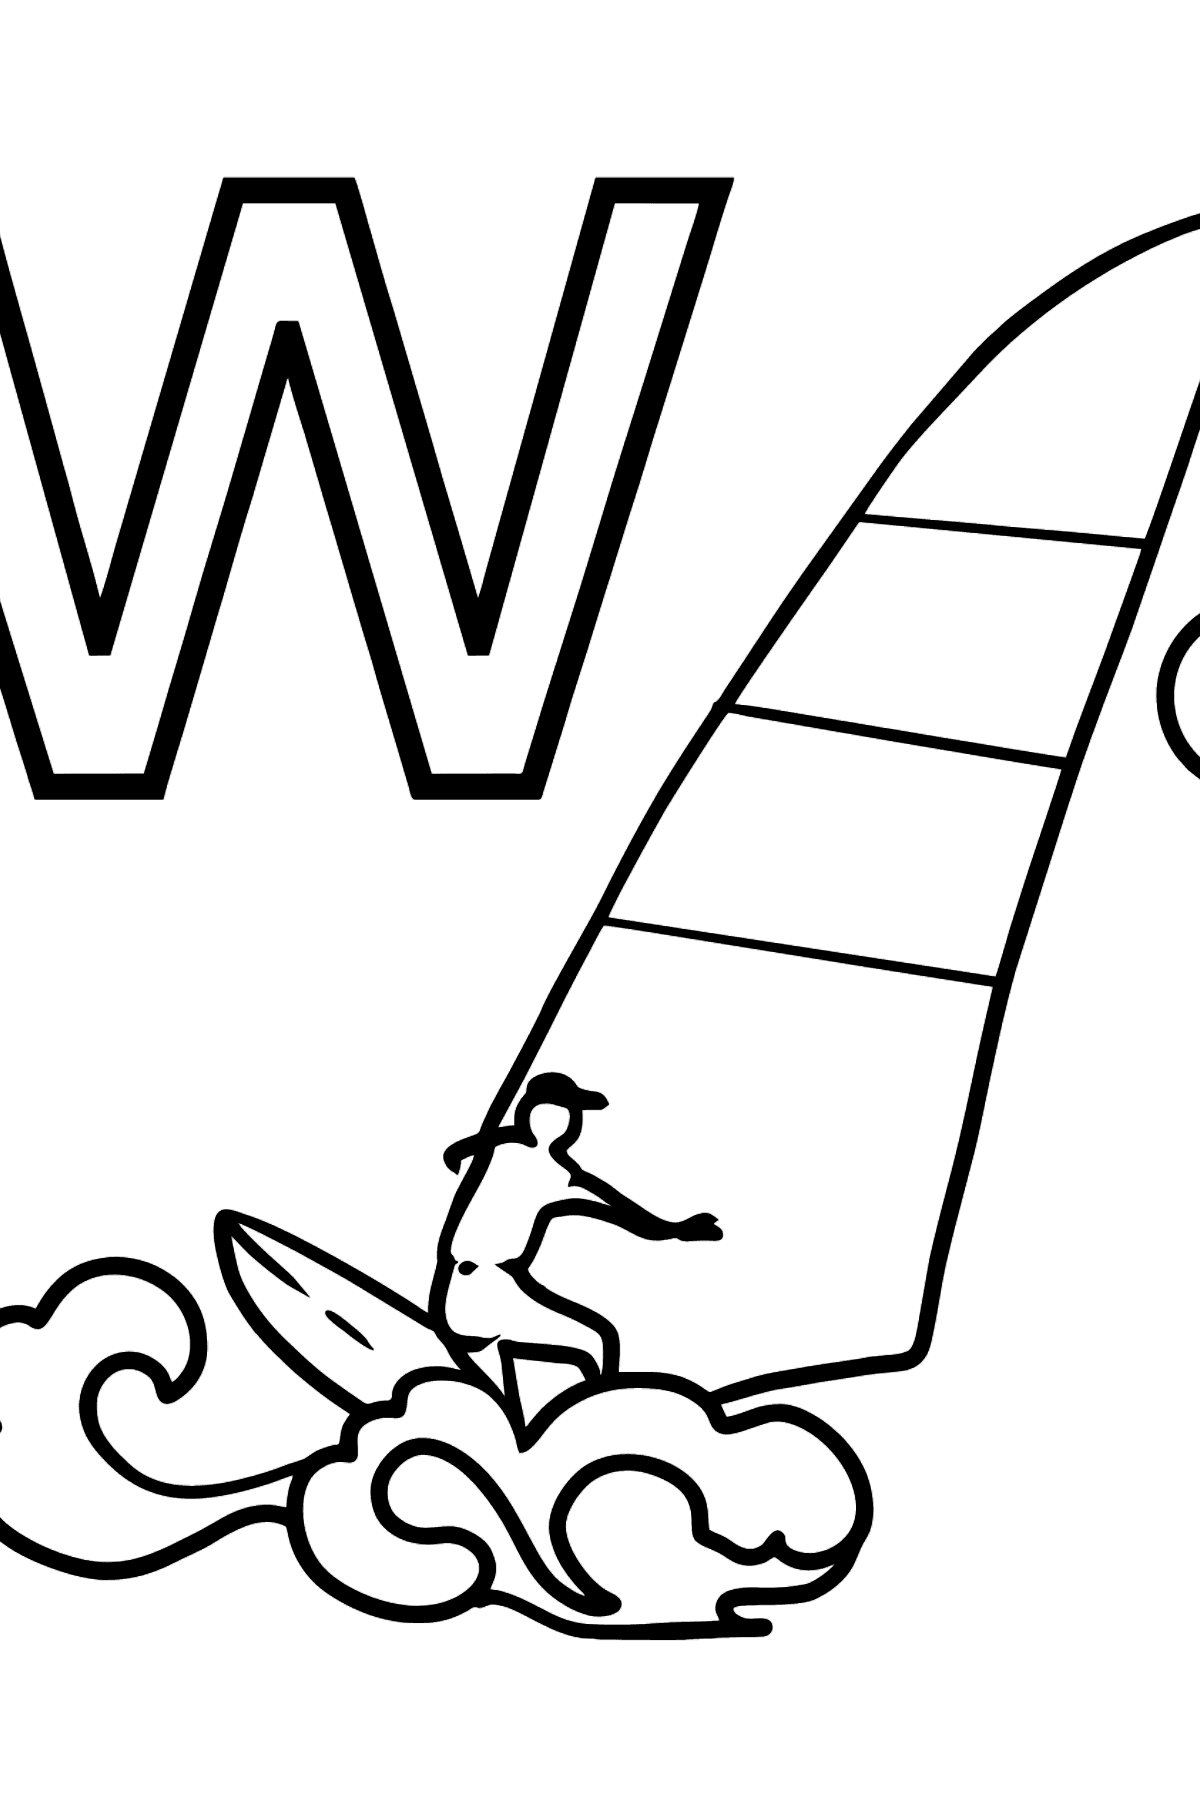 Portuguese Letter W coloring pages - WINDSURF - Coloring Pages for Kids